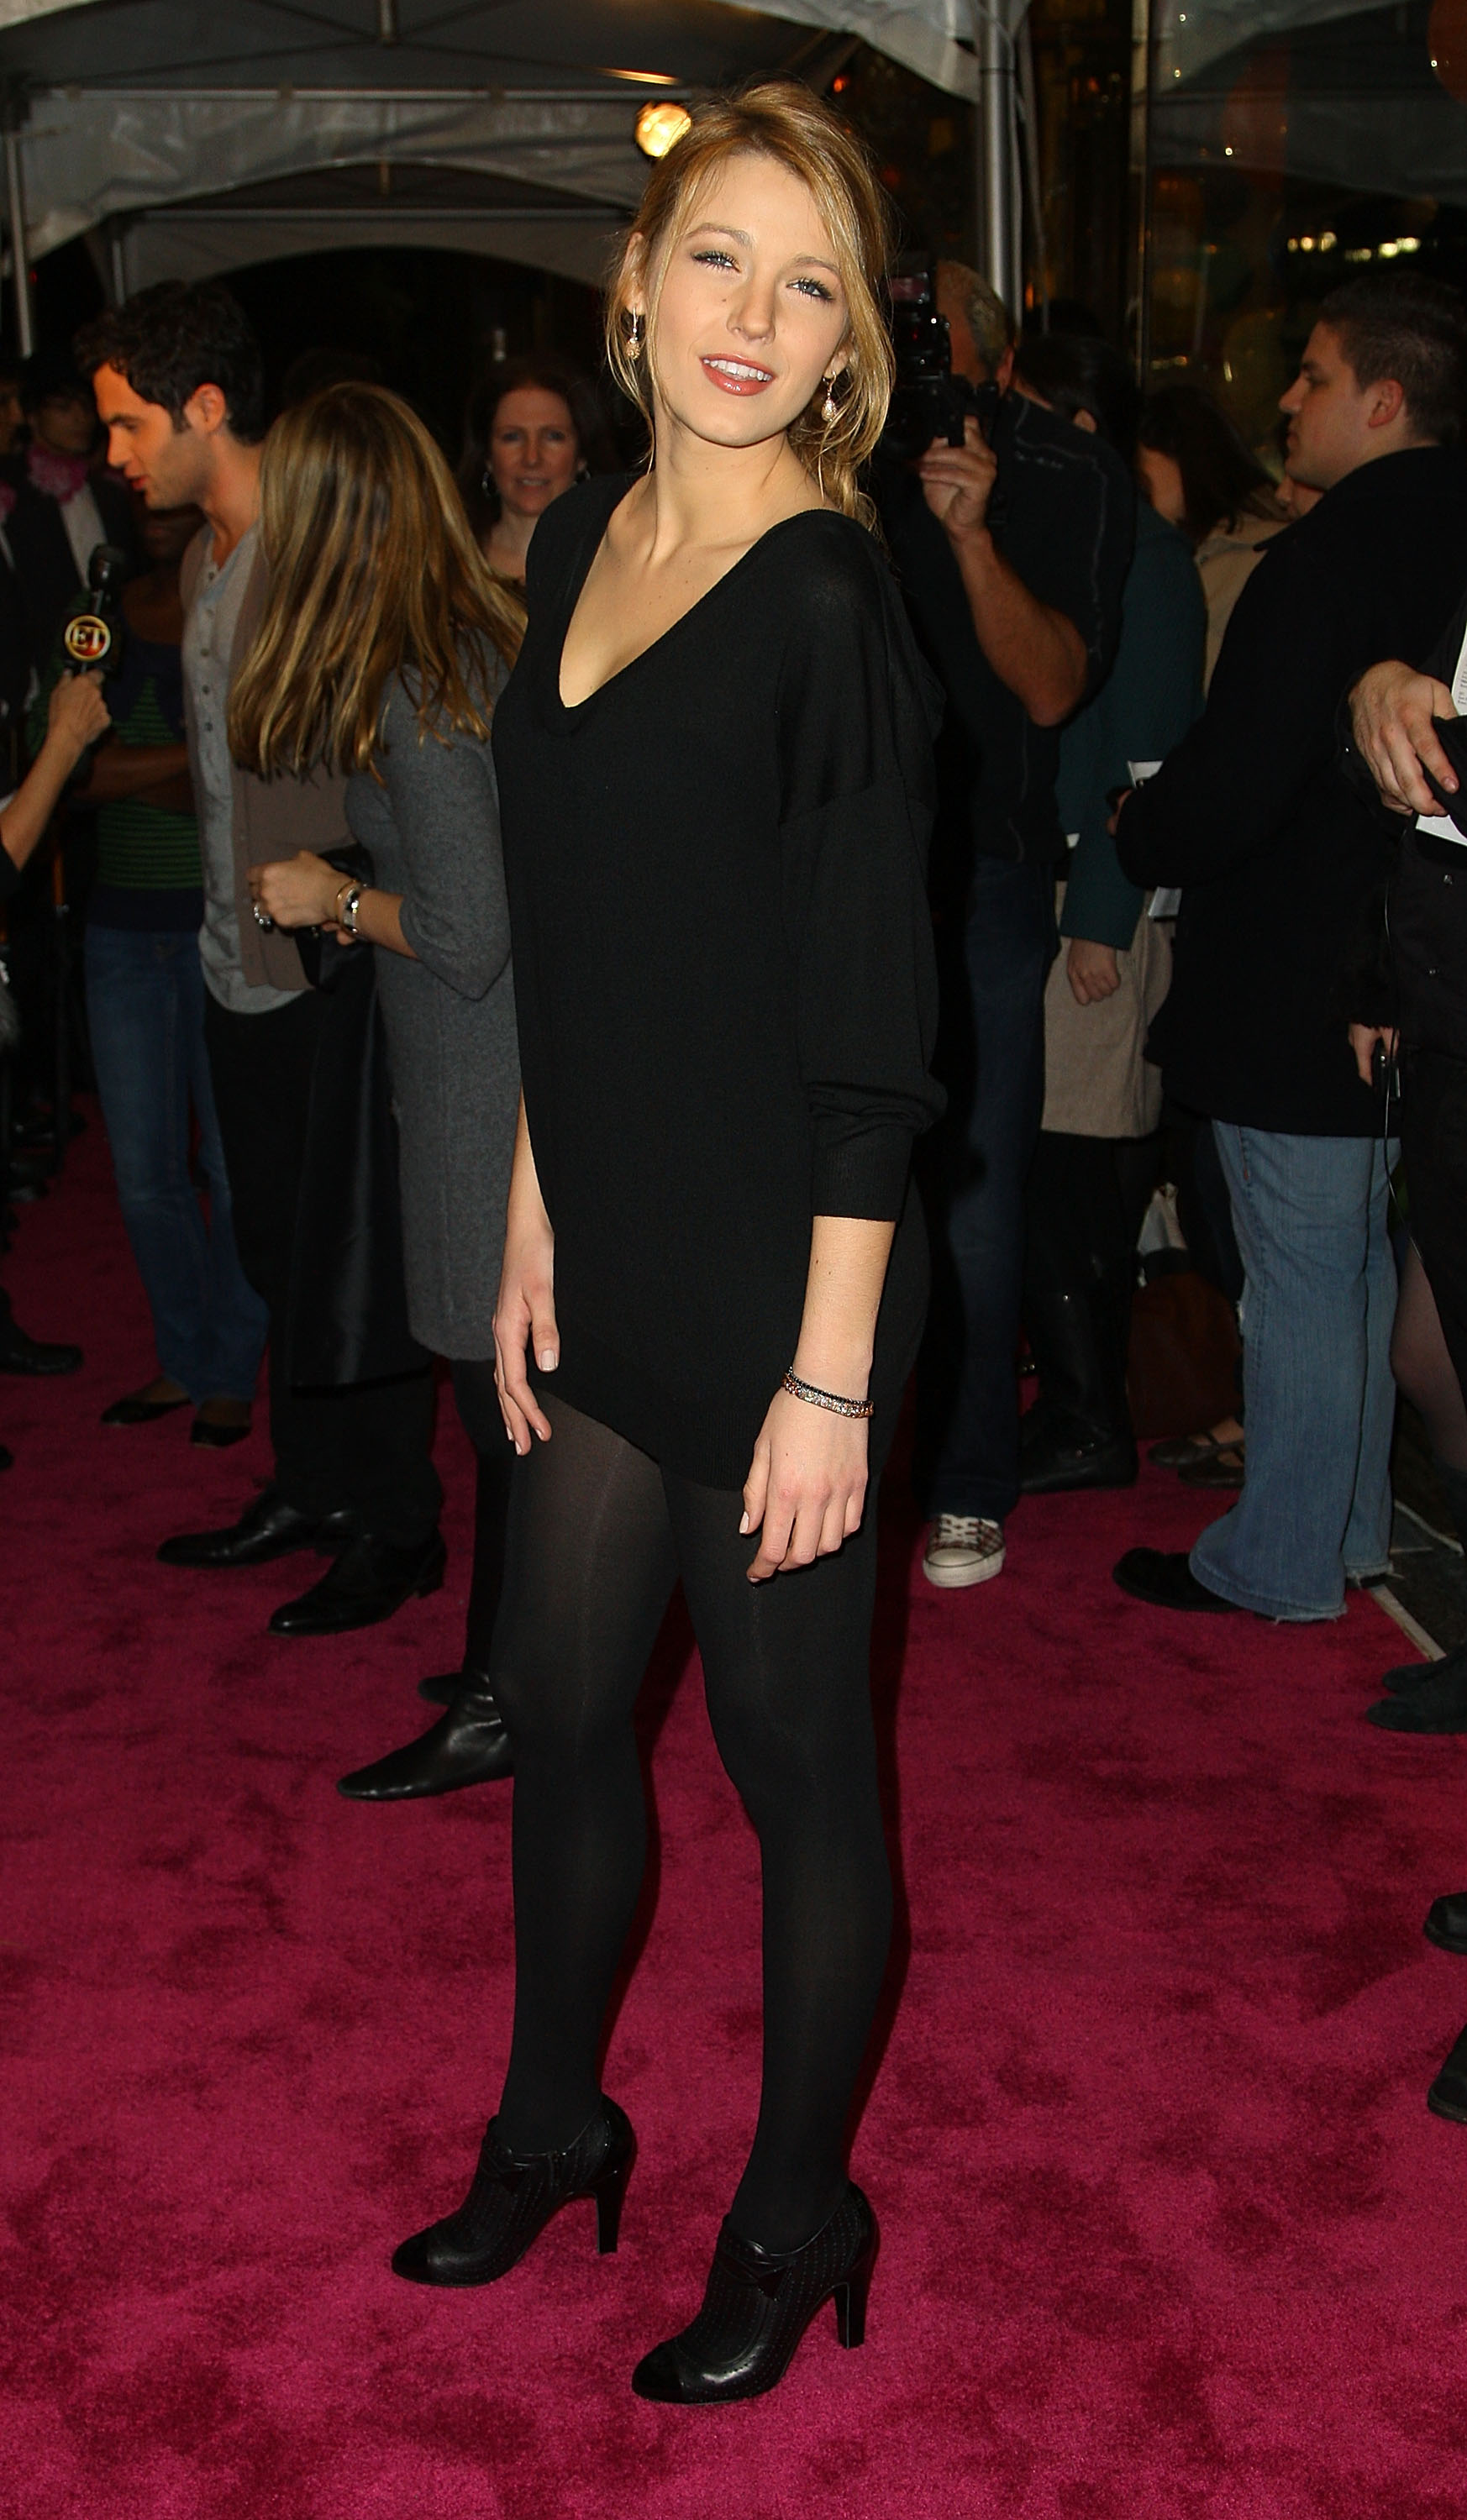 58858_Celebutopia-Blake_Lively-Opening_party_for_Juicy_Couture1s_5th_Avenue_flagship_store-04_122_894lo.jpg